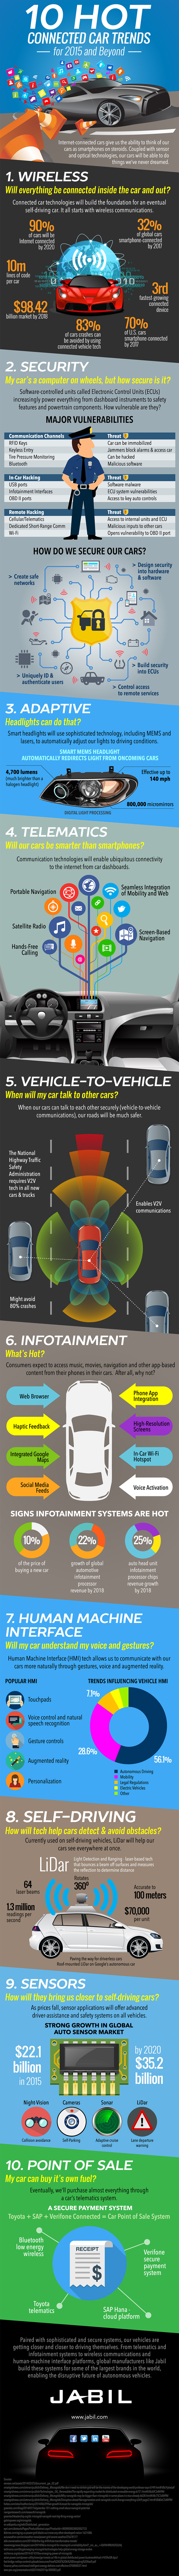 10 Hot Connected Car Trends for 2015 and Beyond